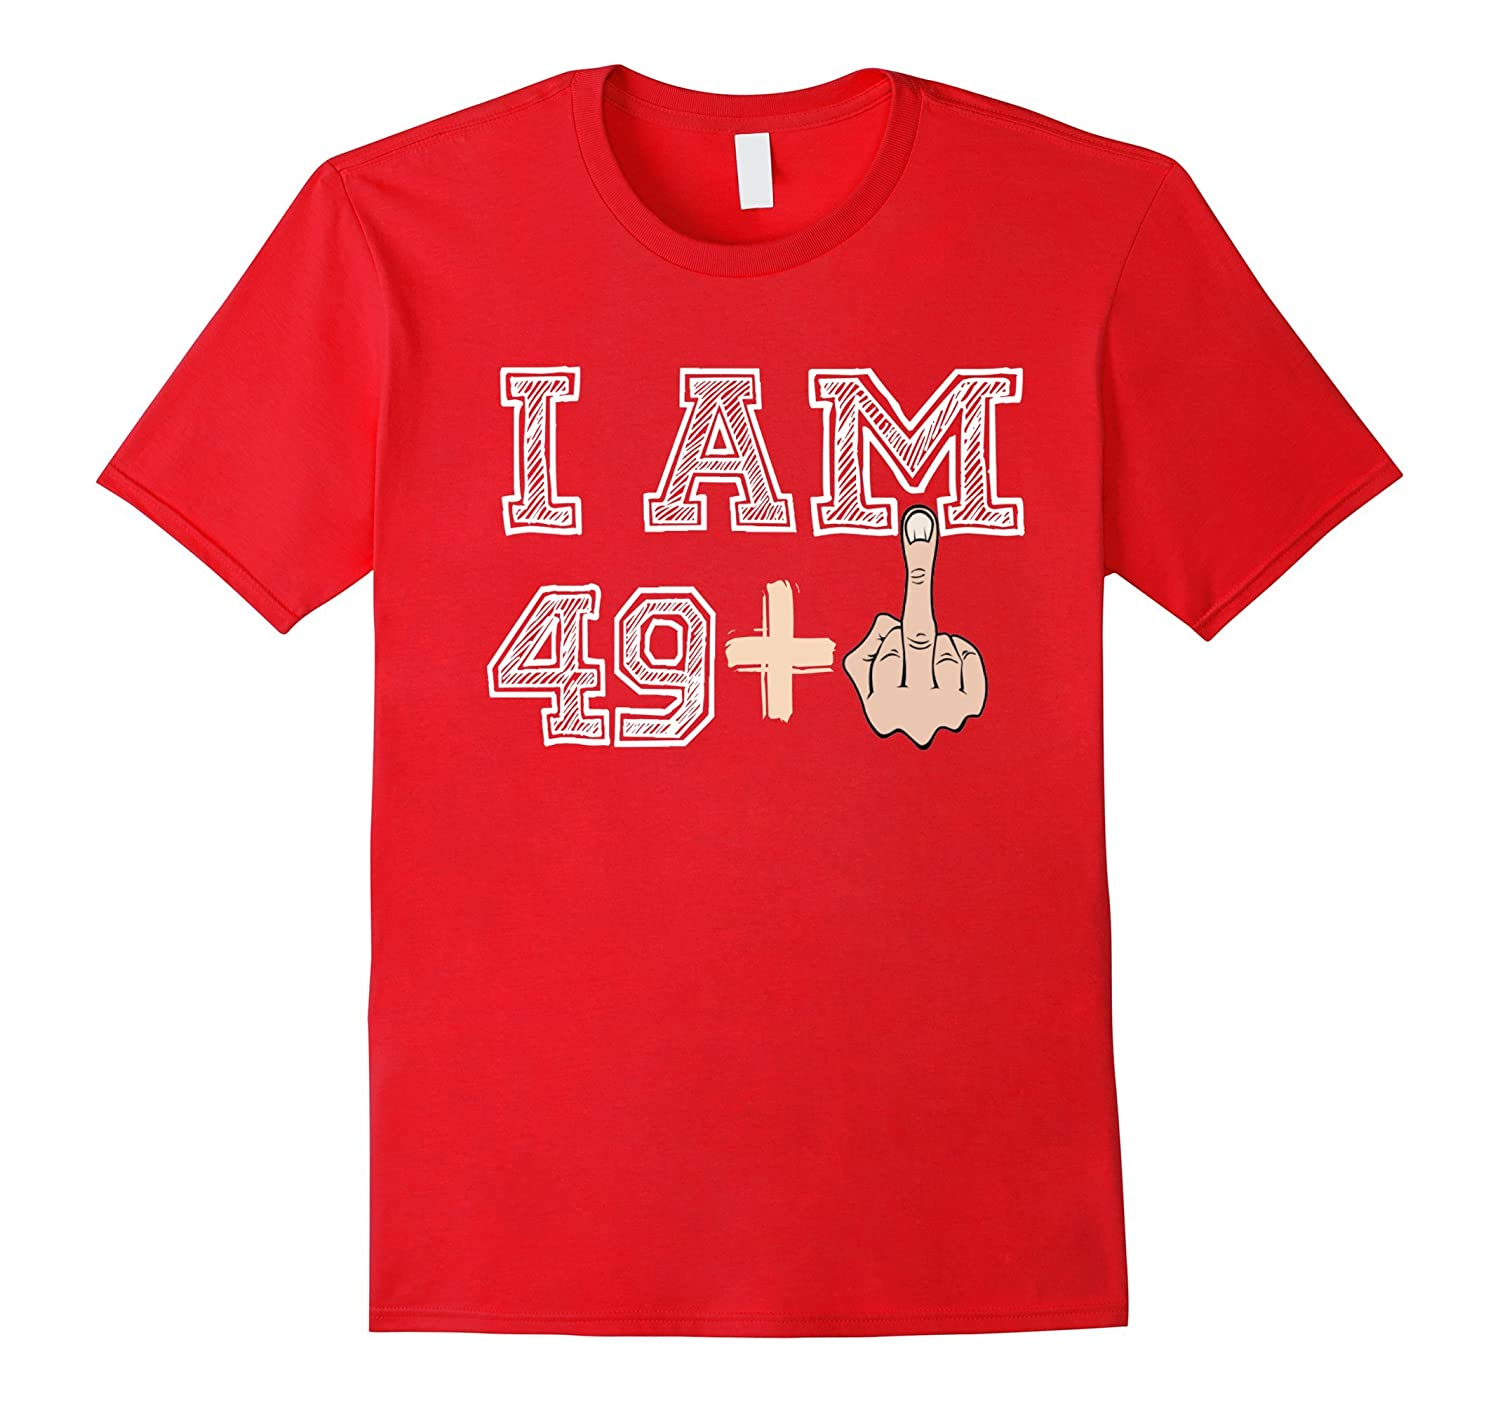 Mens 50th Birthday Gift Shirt 50 Years Old Funny T Ah My One Ahmyshirt